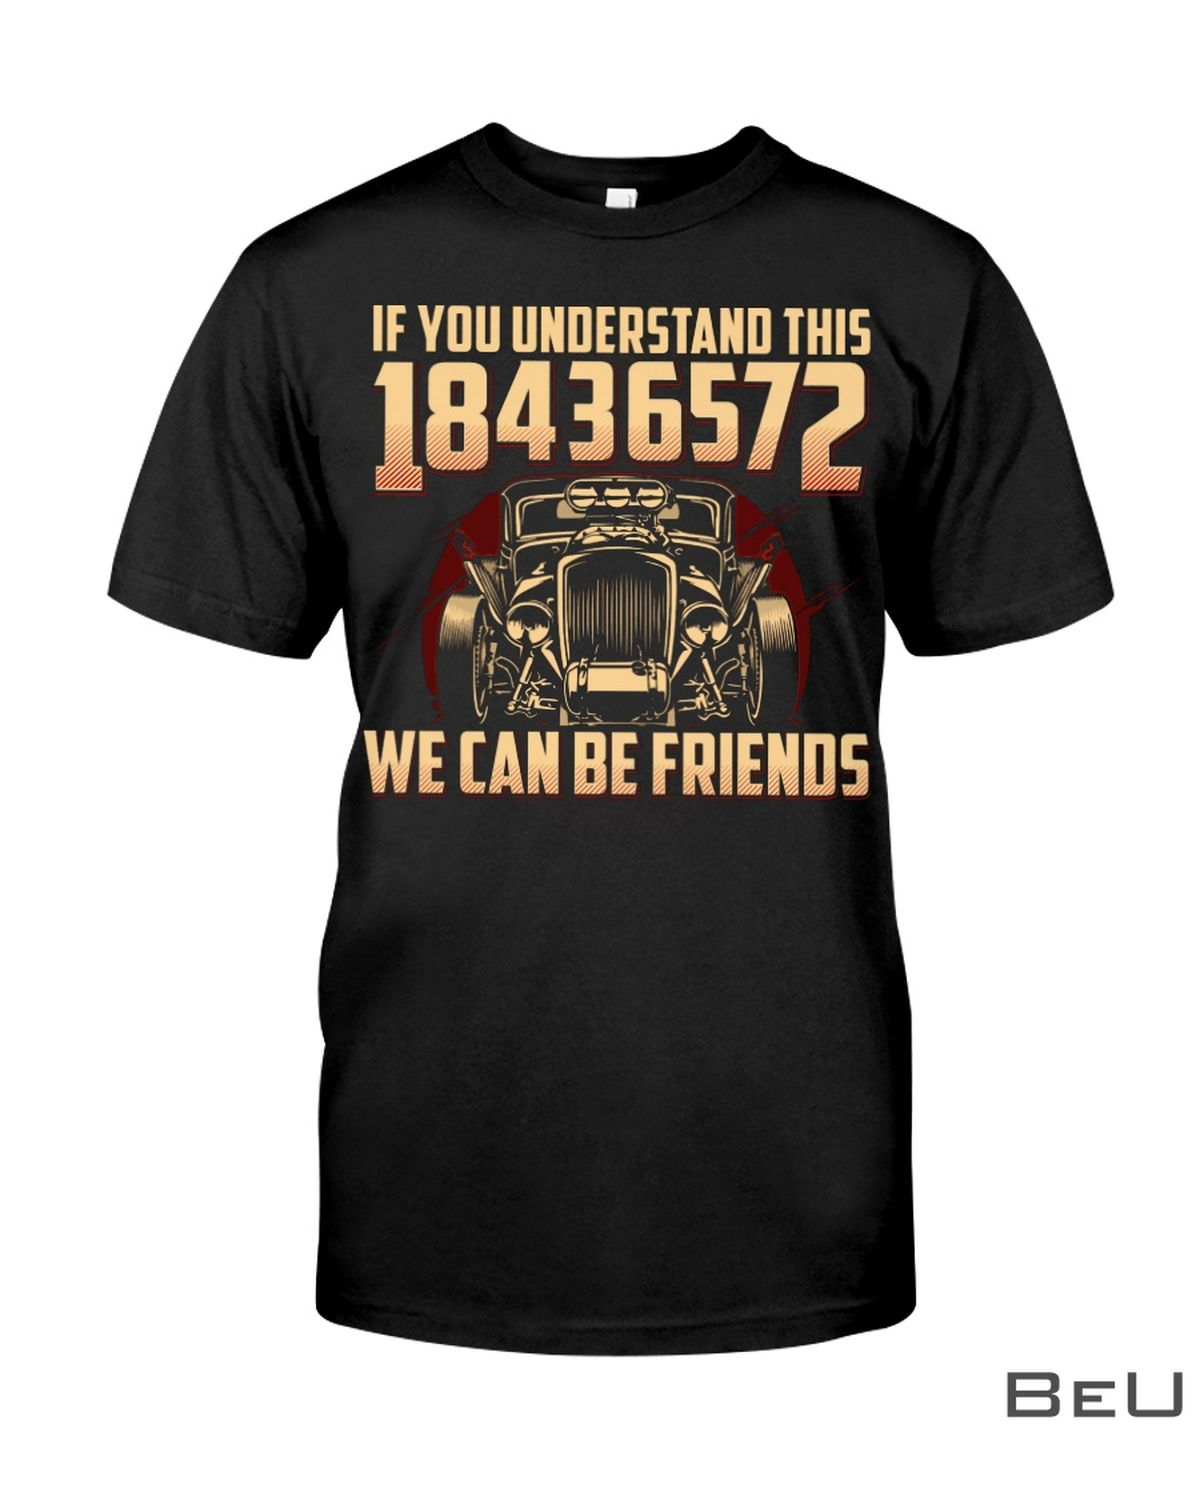 Hot Rod If You Understand This 18436572 We Can Be Friends Shirt